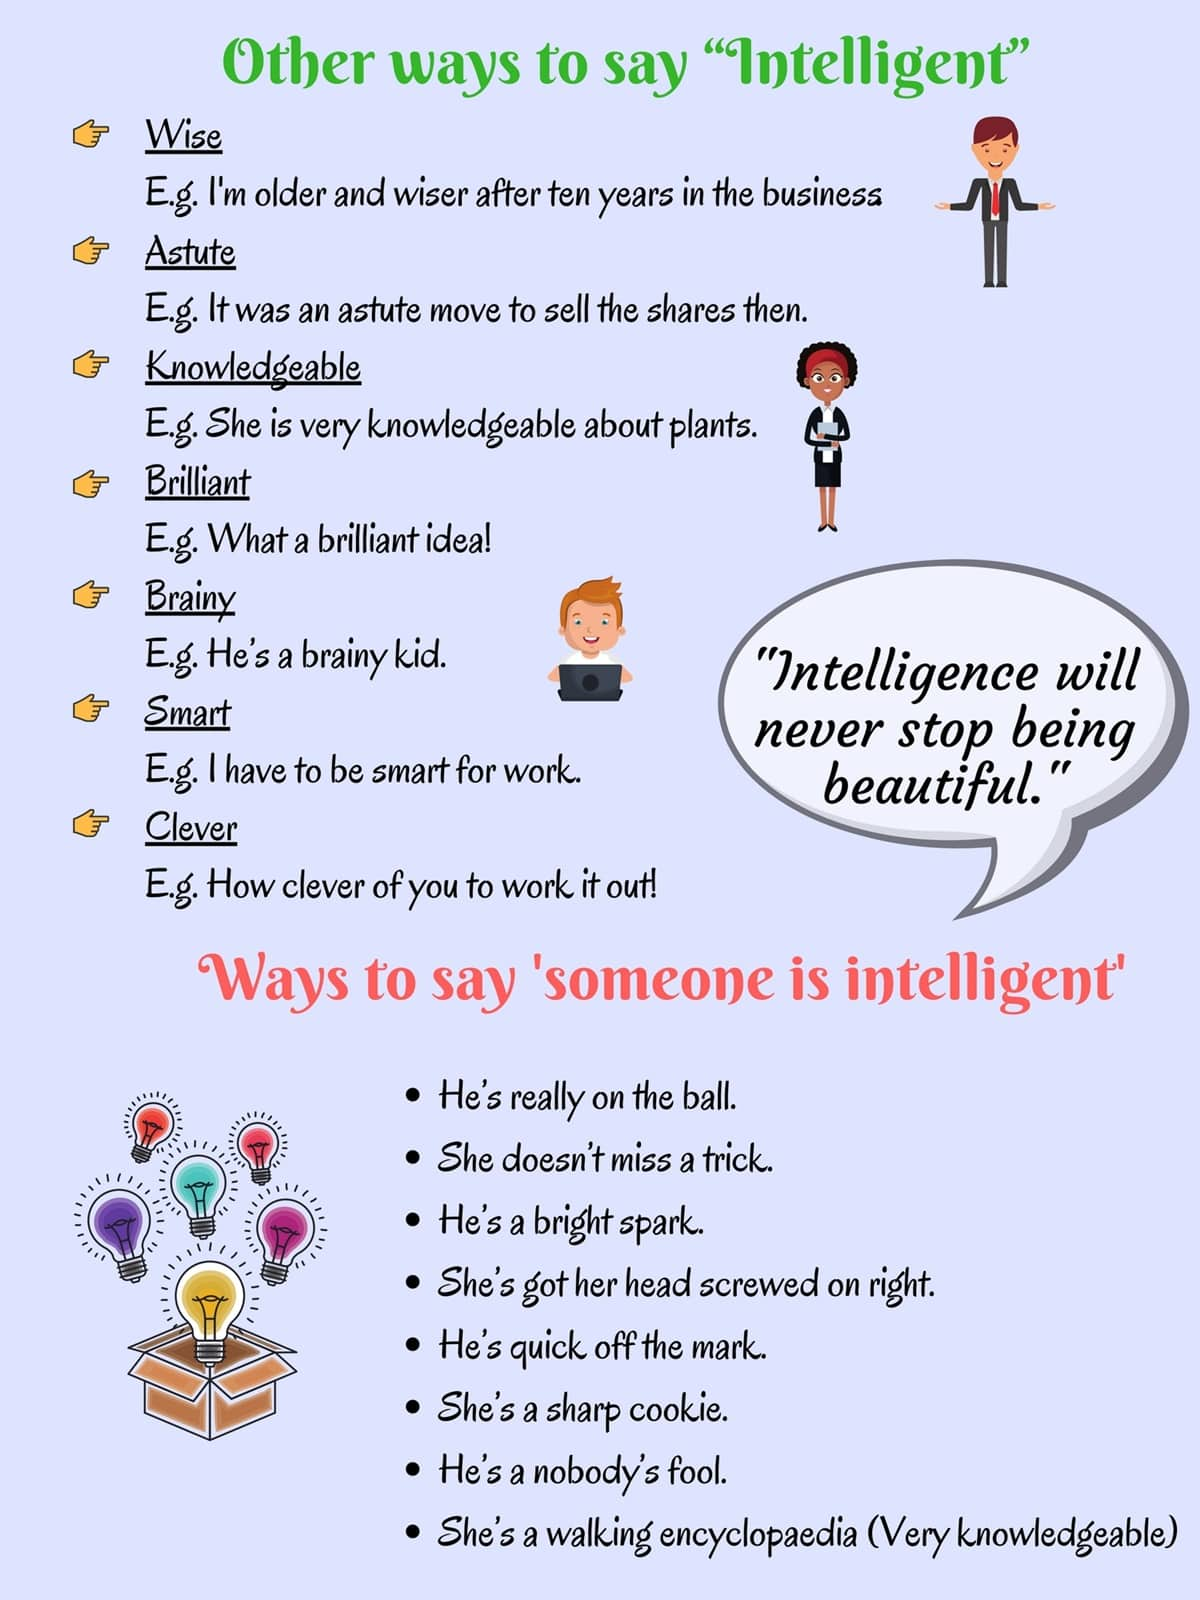 Ways to Say Someone is Intelligent